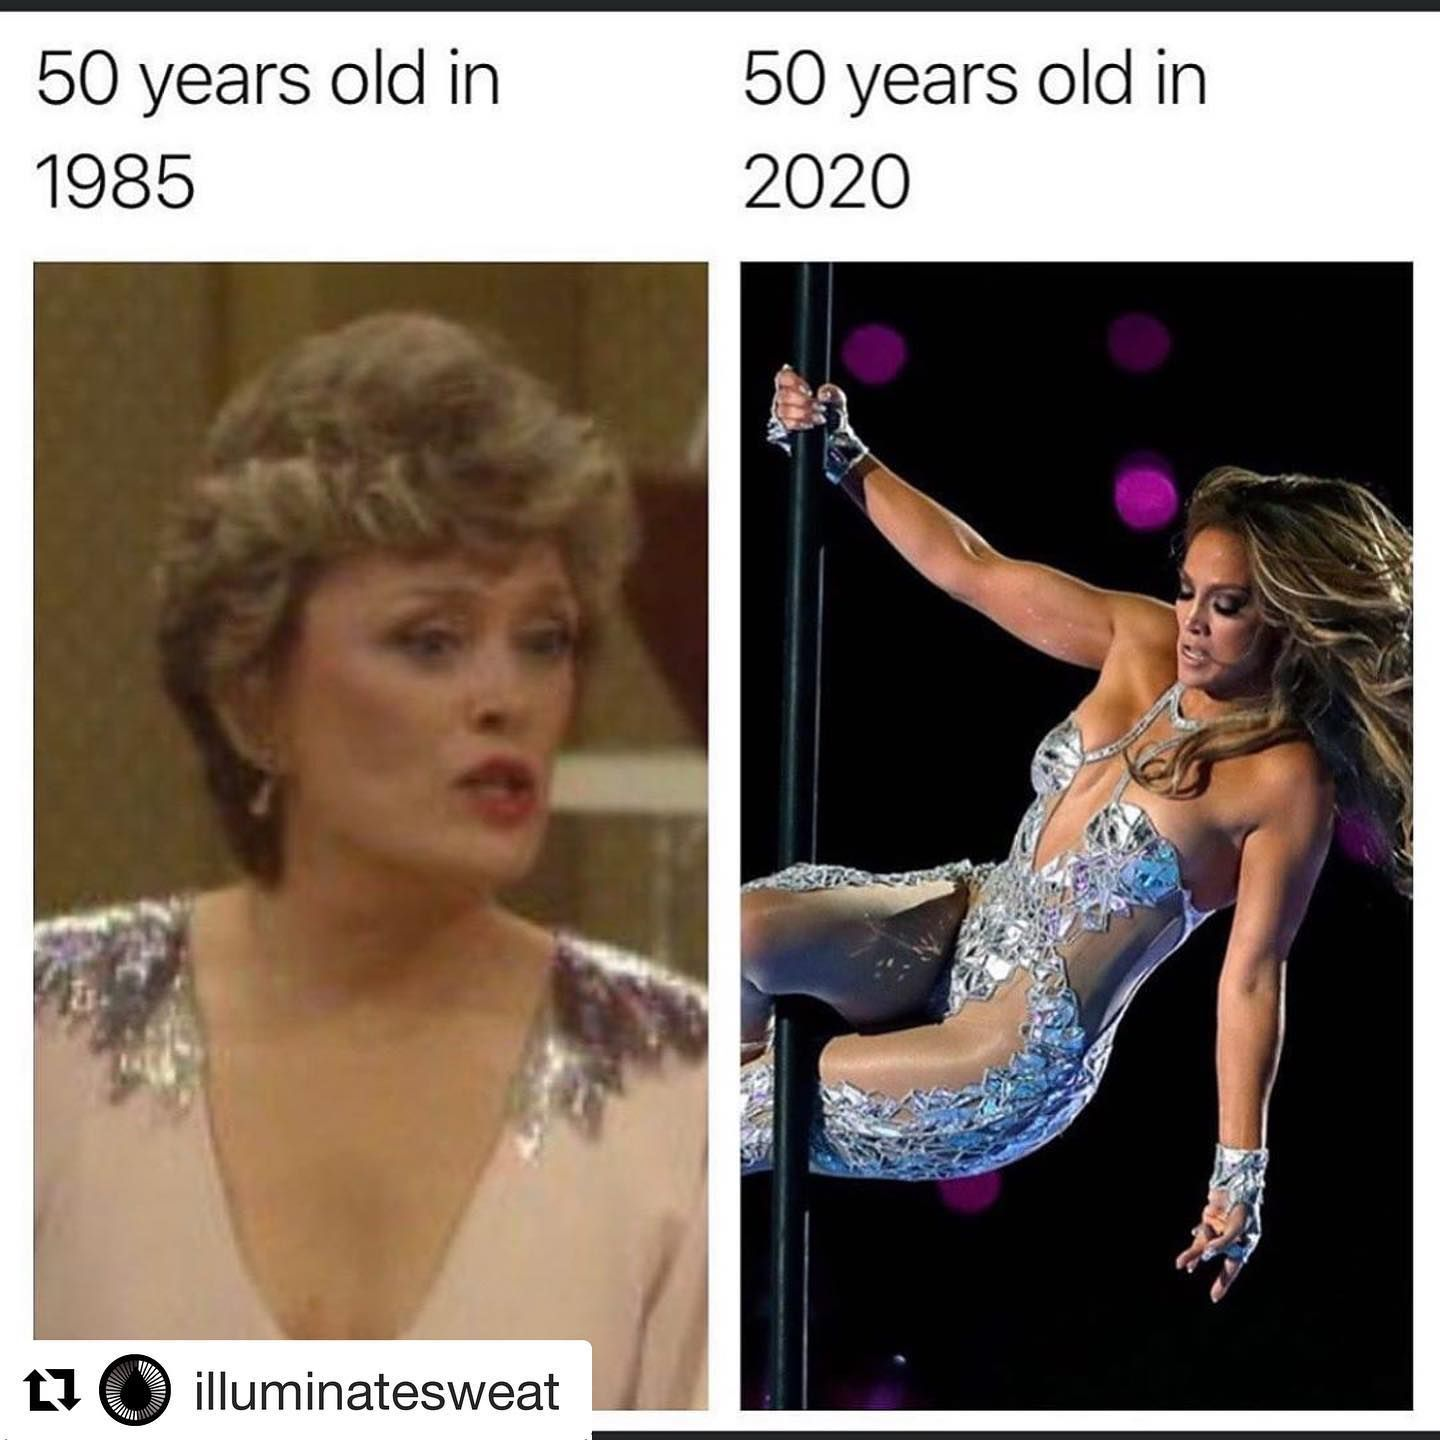 Mean tweet about Jlo being better than Blanche Devereaux just because she looks younger due to new anti-aging techniques